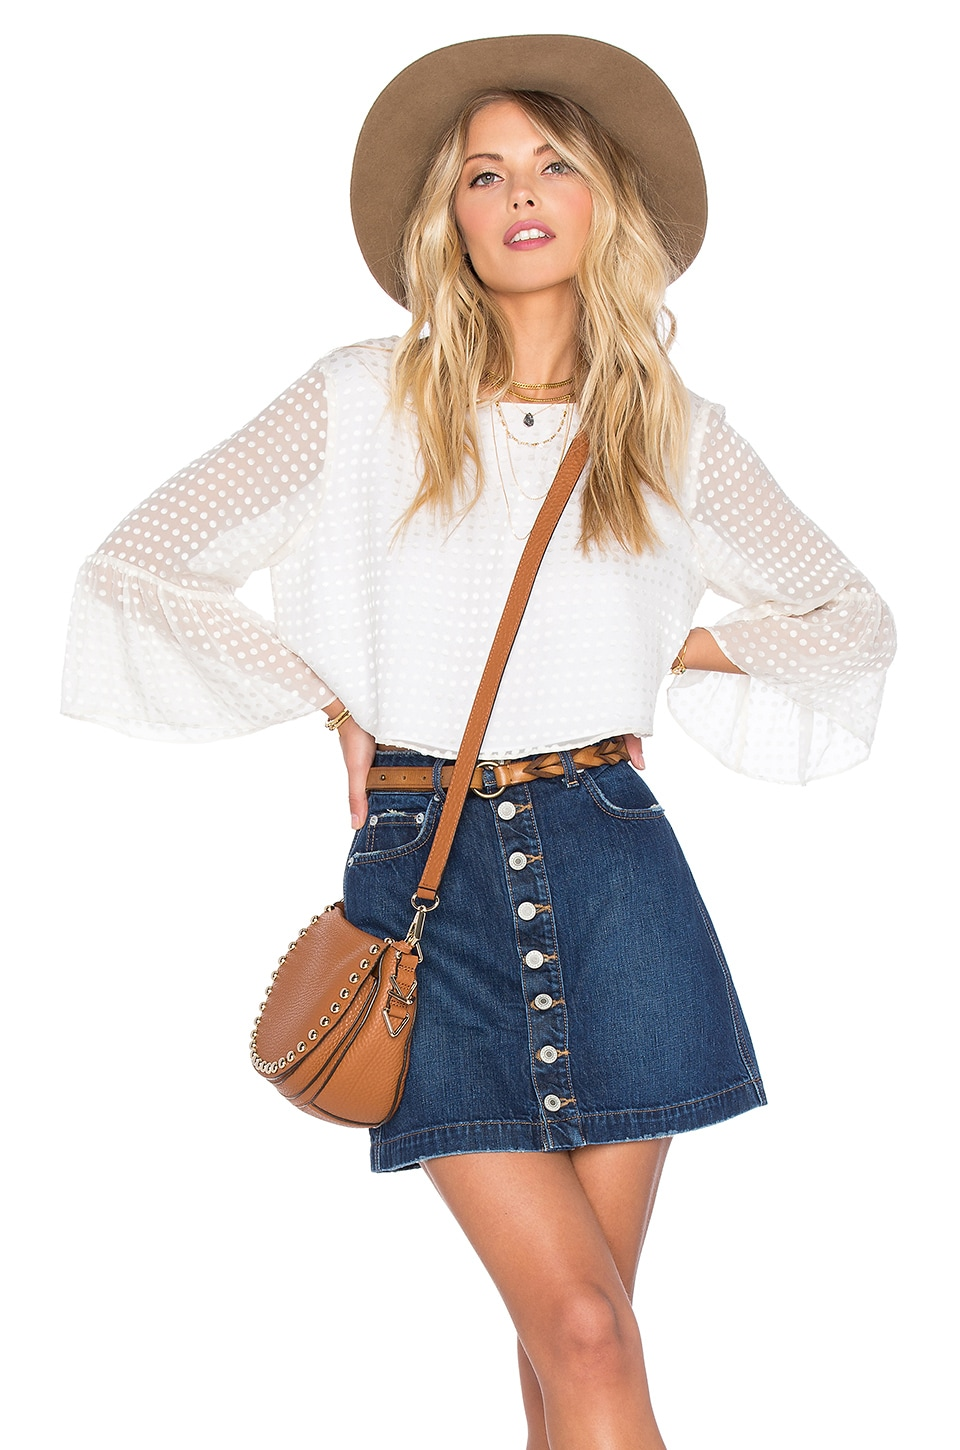 Tularosa x REVOLVE Polly Blouse in White Dot